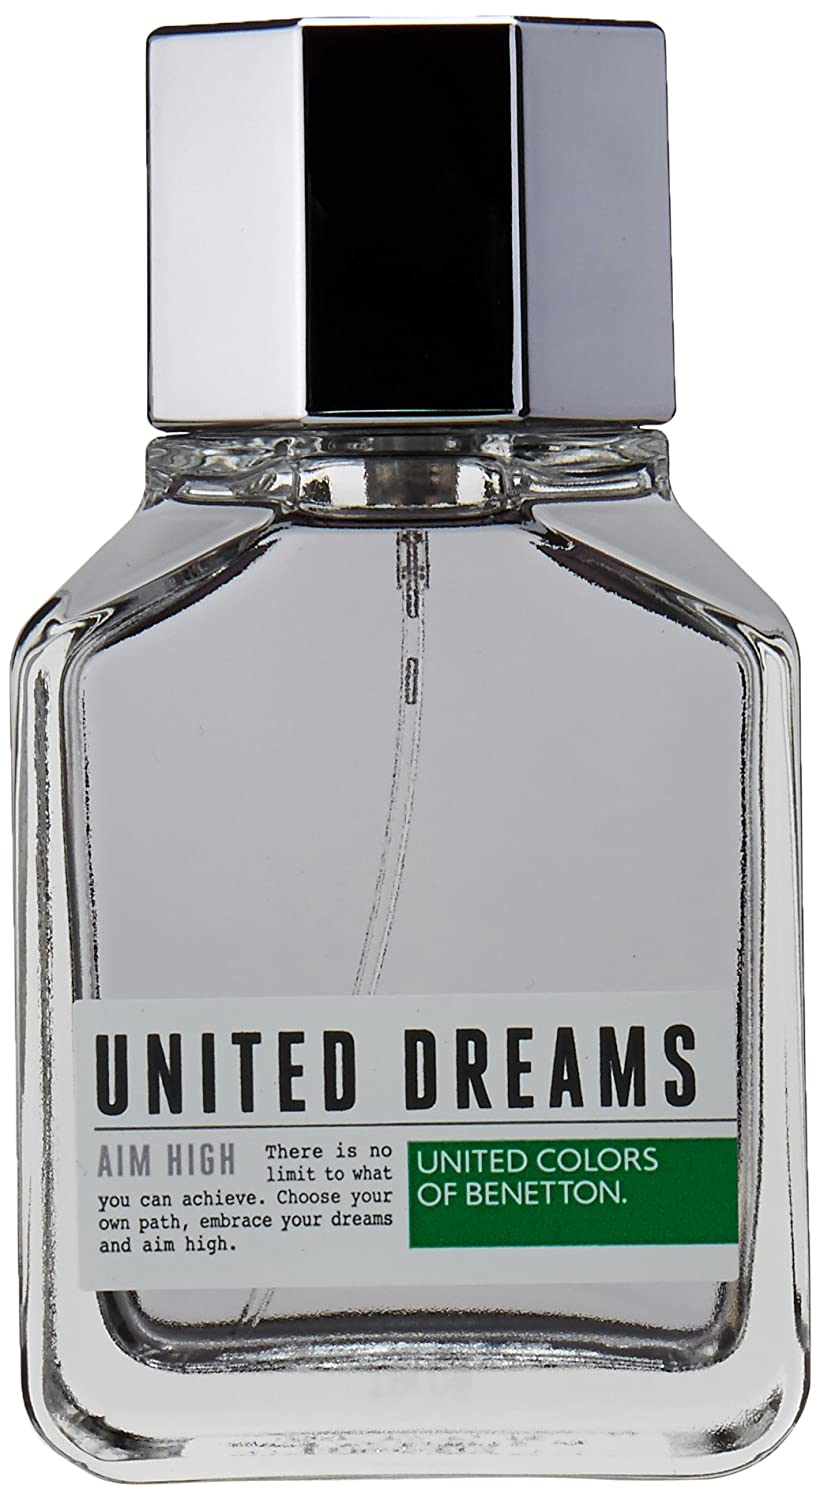 Buy United Colors Of Benetton Dreams Aim High Perfume For Men 100